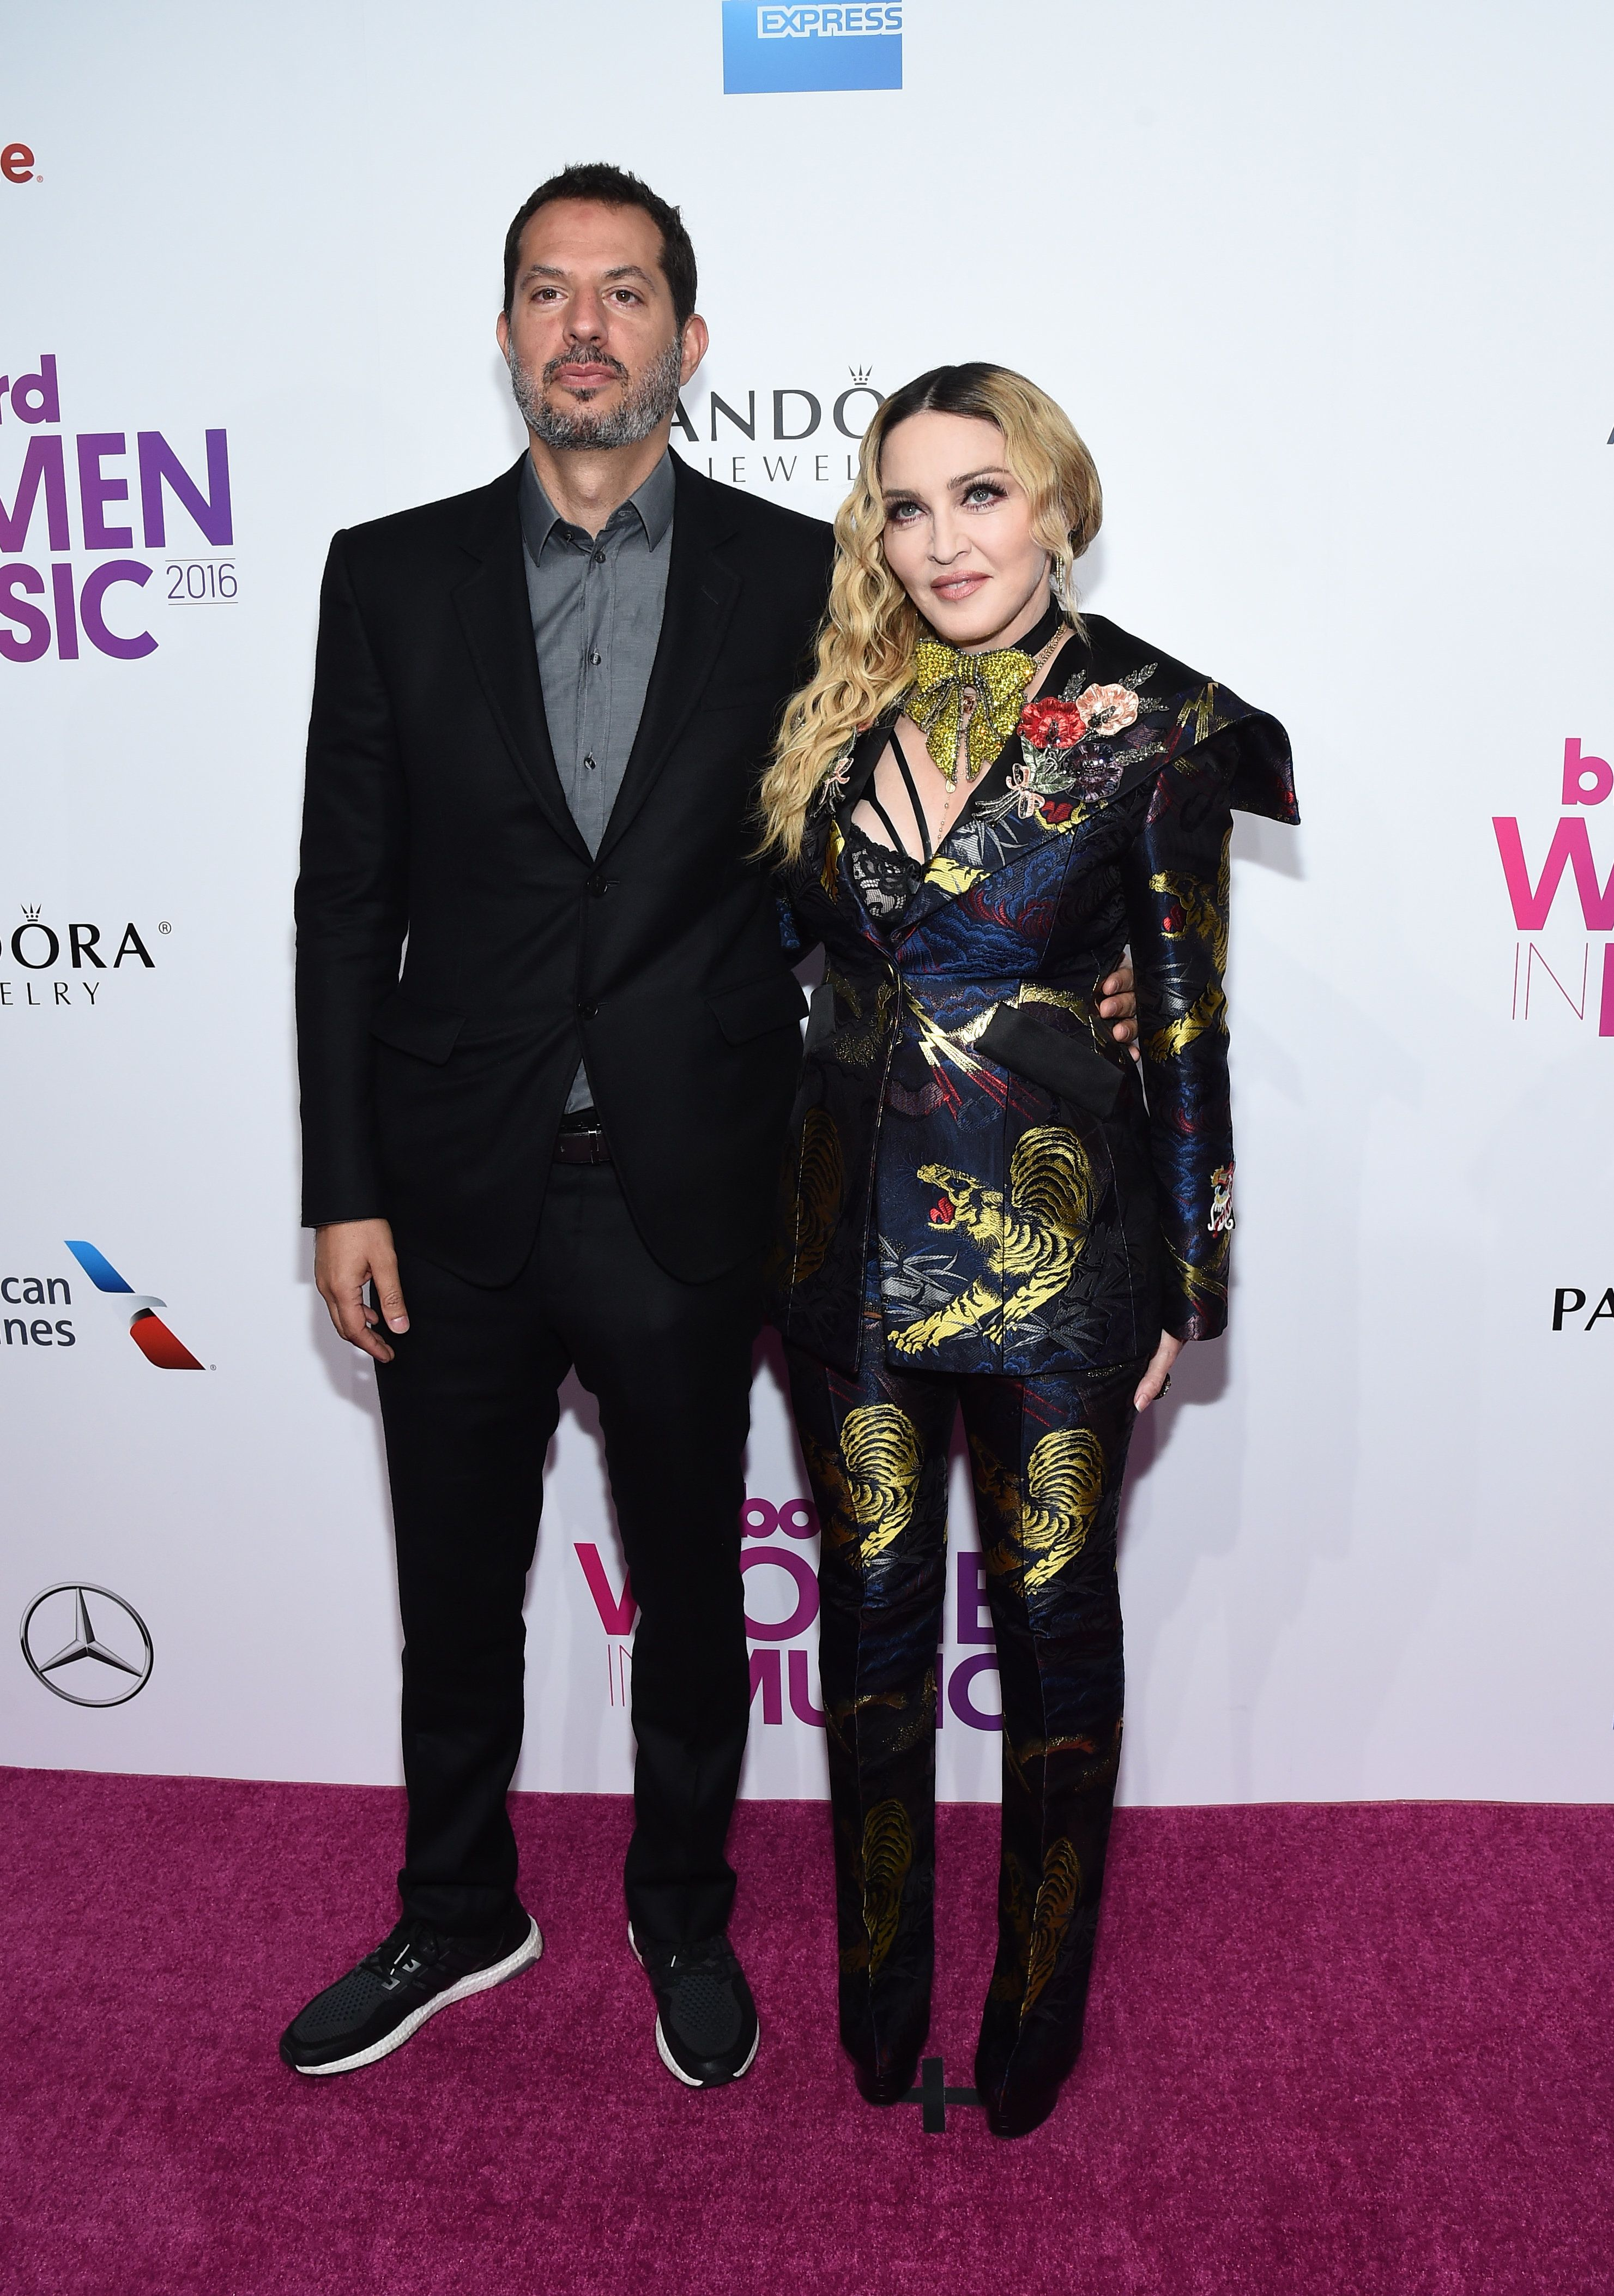 Madonna Complains To Manager On Instagram Over 'Songwriting